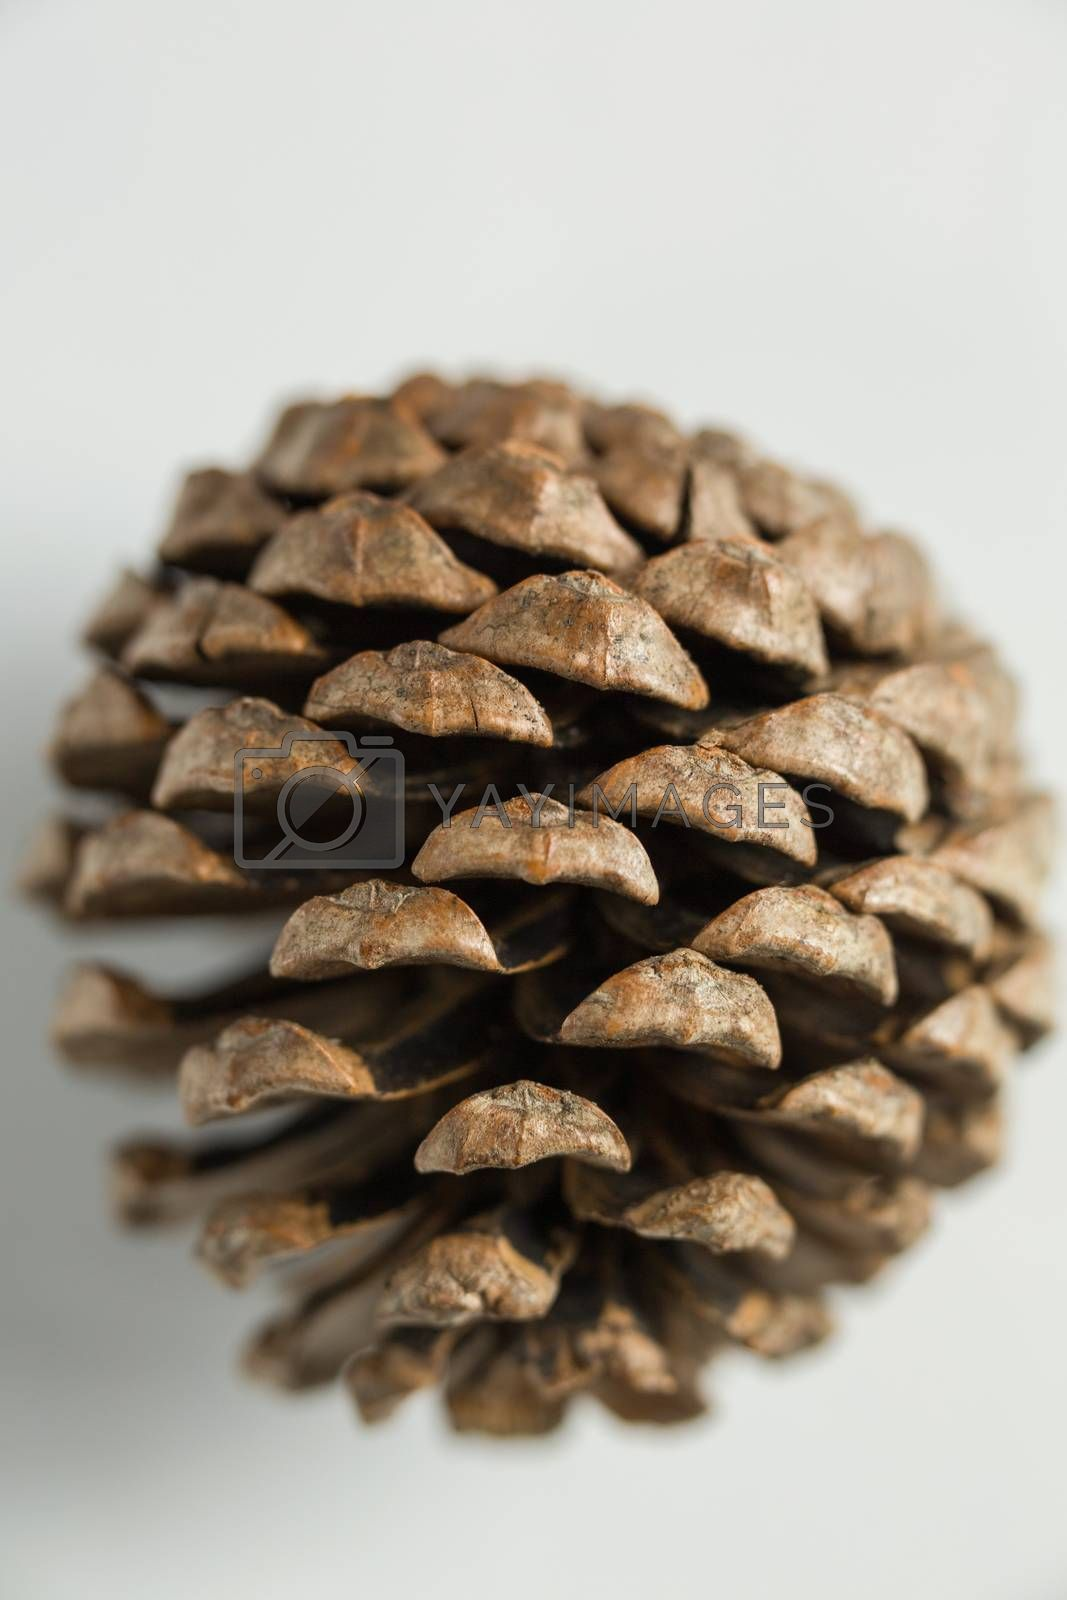 Pine cone on white background by Wavebreakmedia